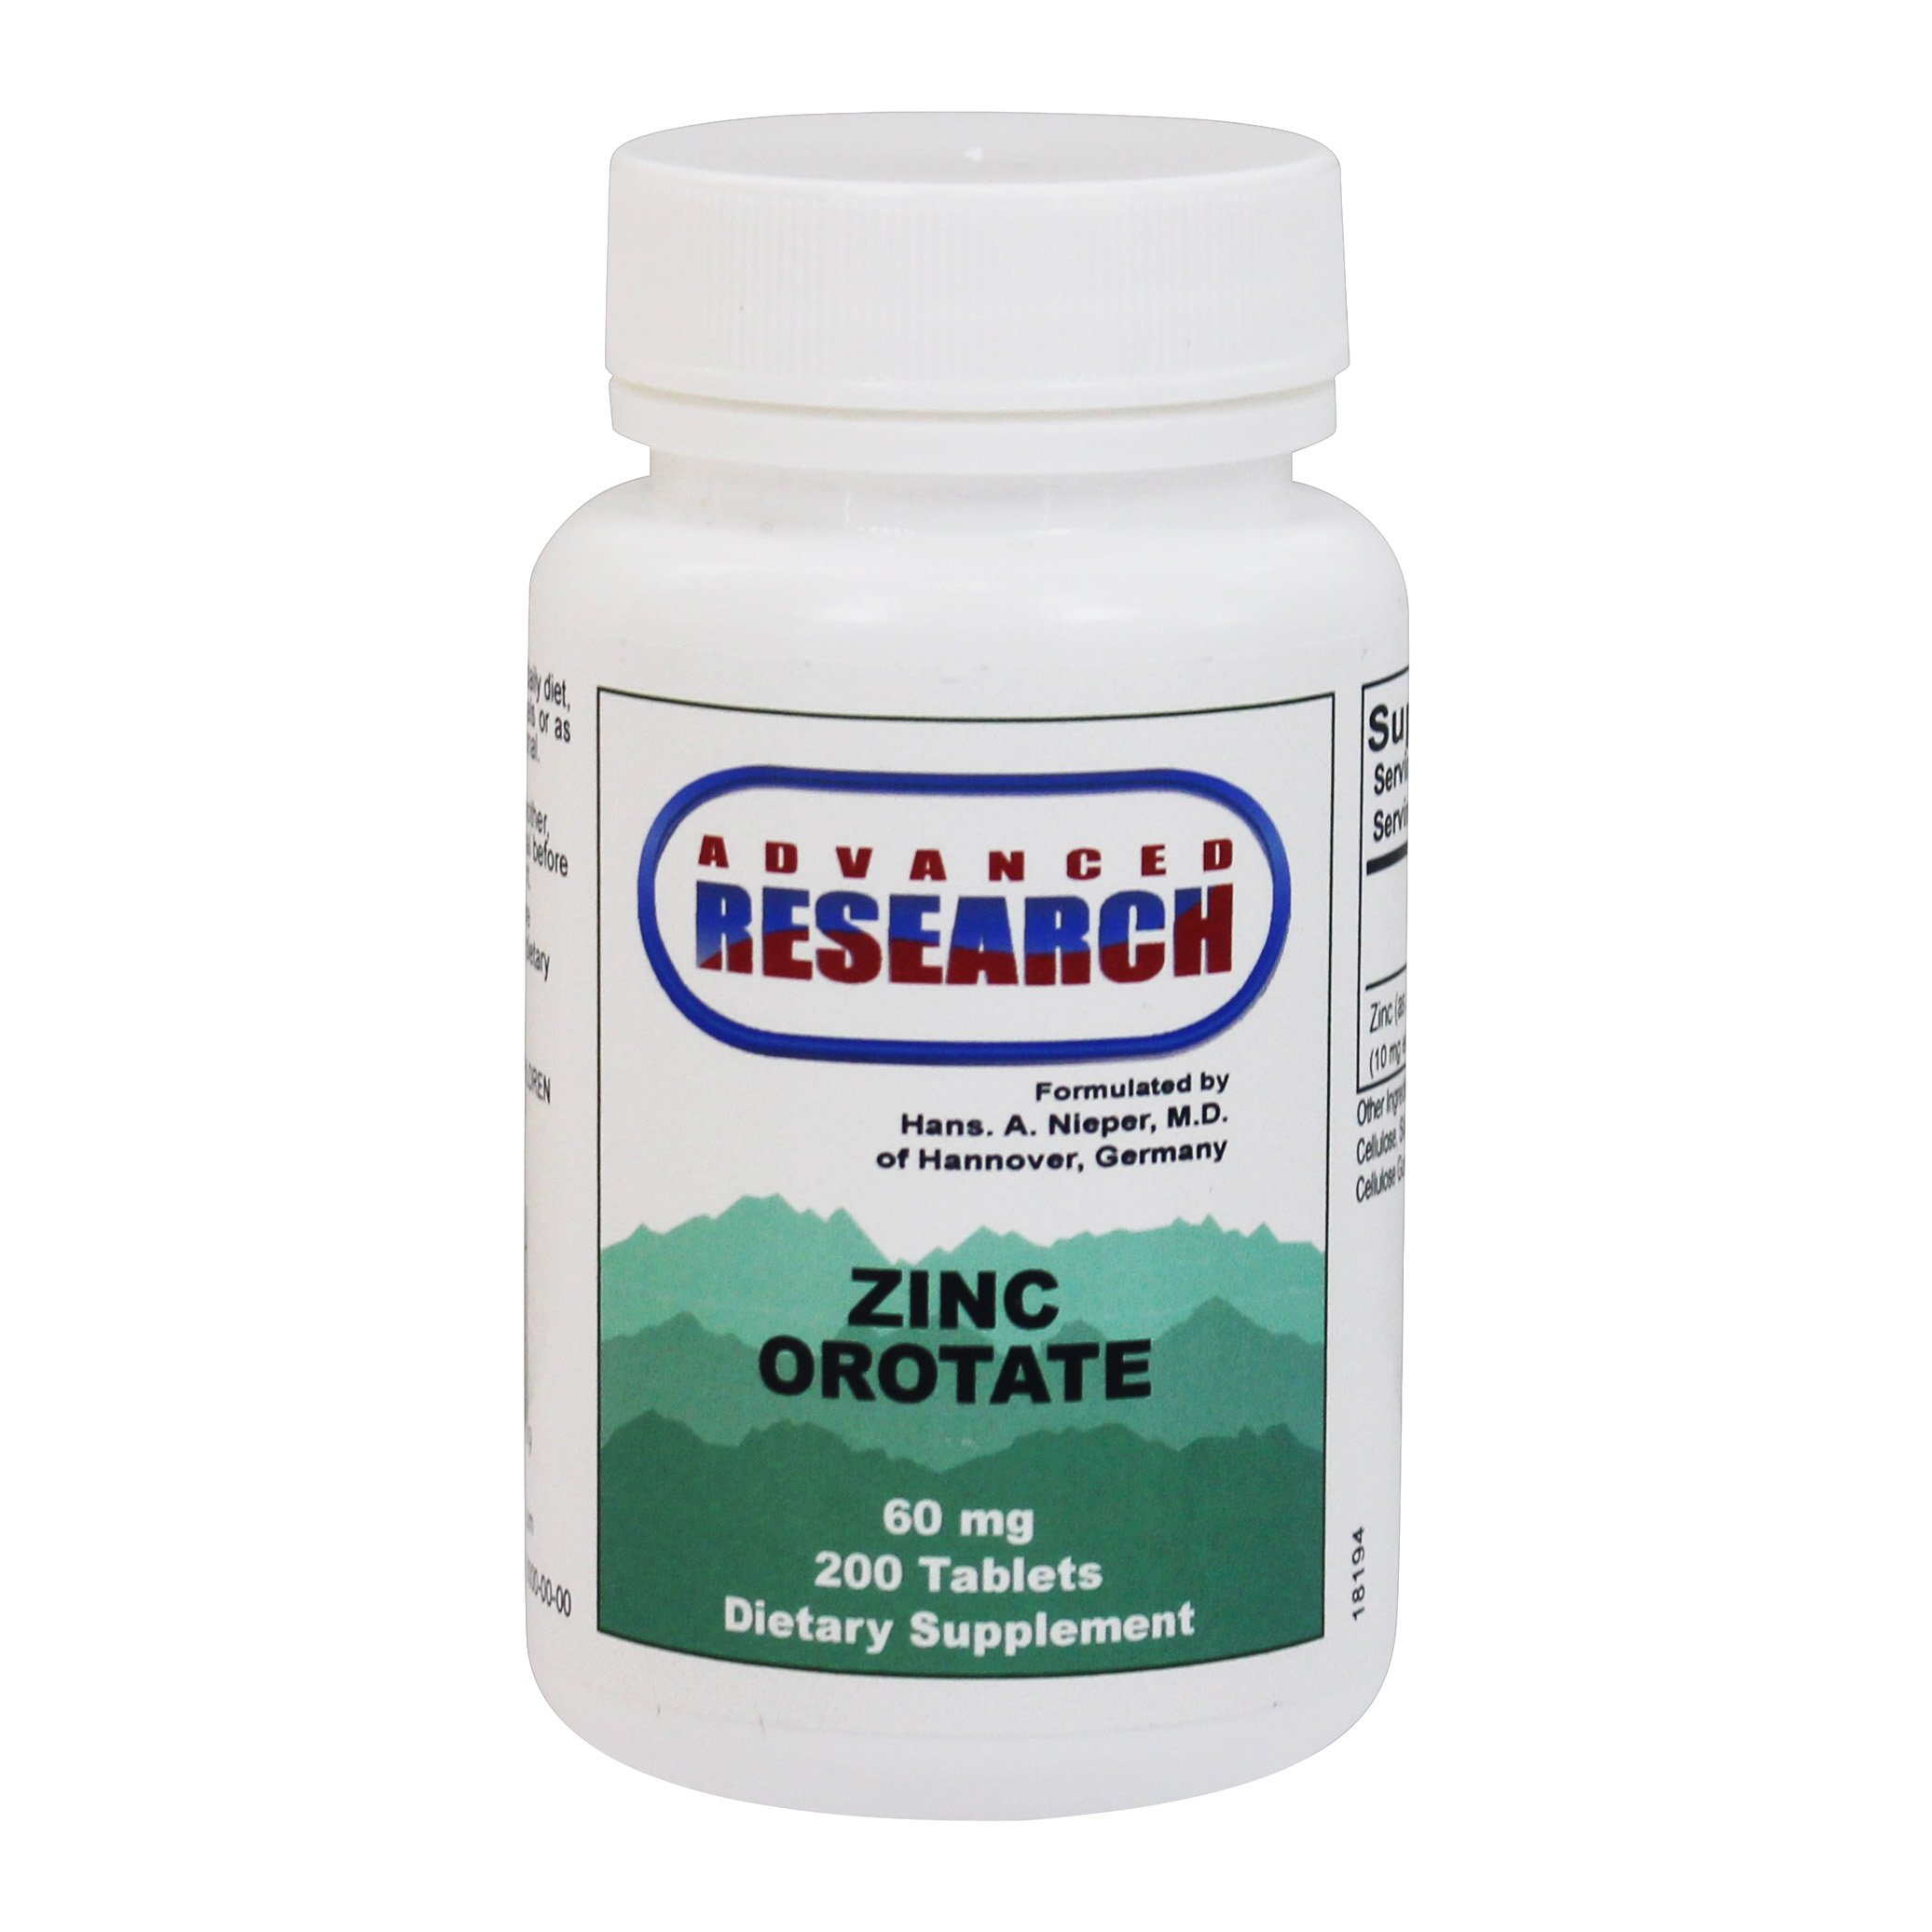 Advanced Research - Zinc Orotate 60 mg. - 200 Tablets